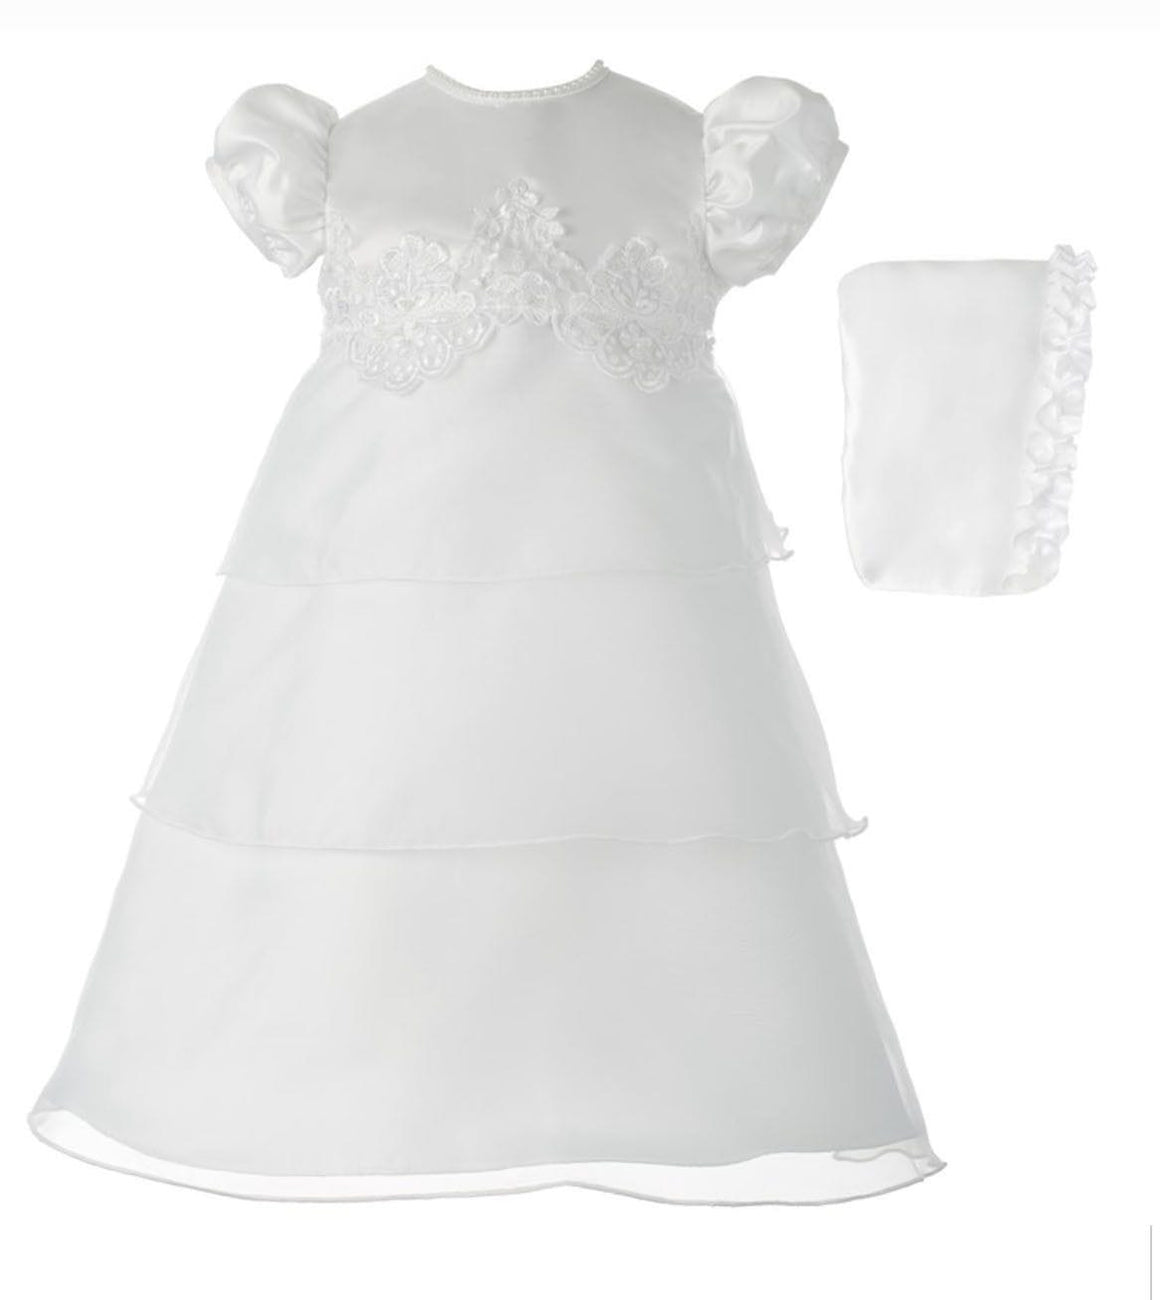 Baptismal Gown (9-12 months)